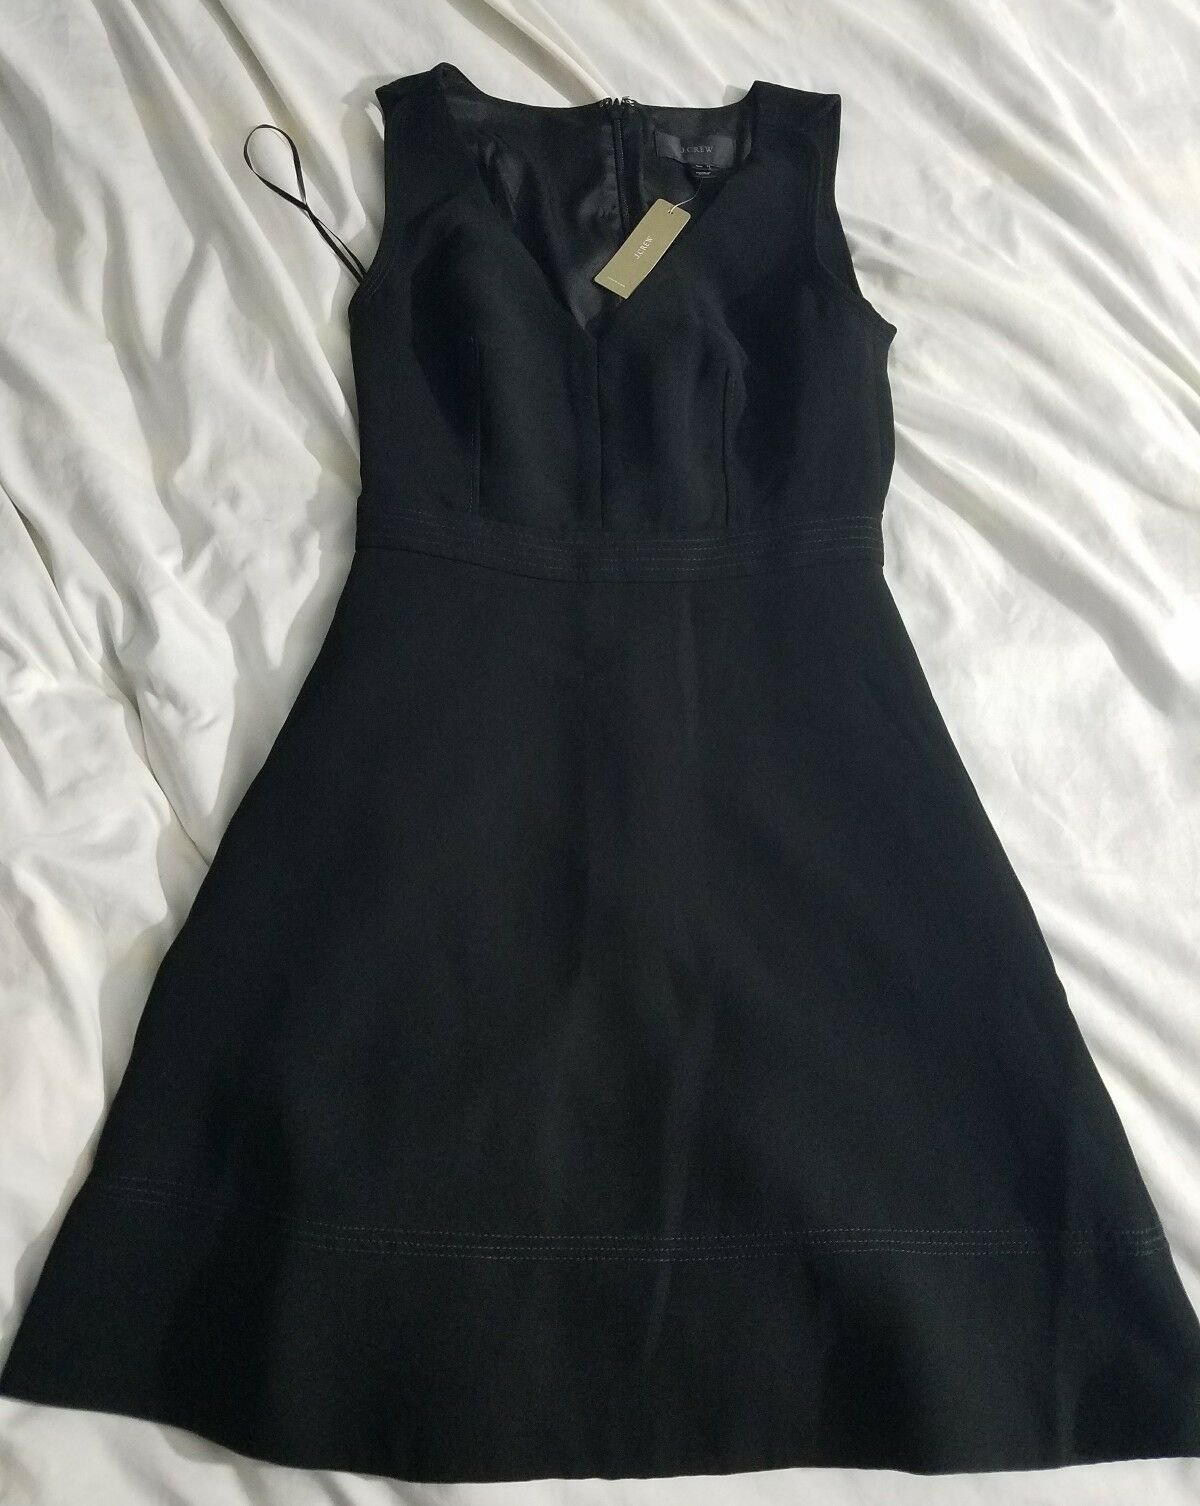 NWT J.CREW V-neck A-line dress e0068 00  schwarz suiting office work party